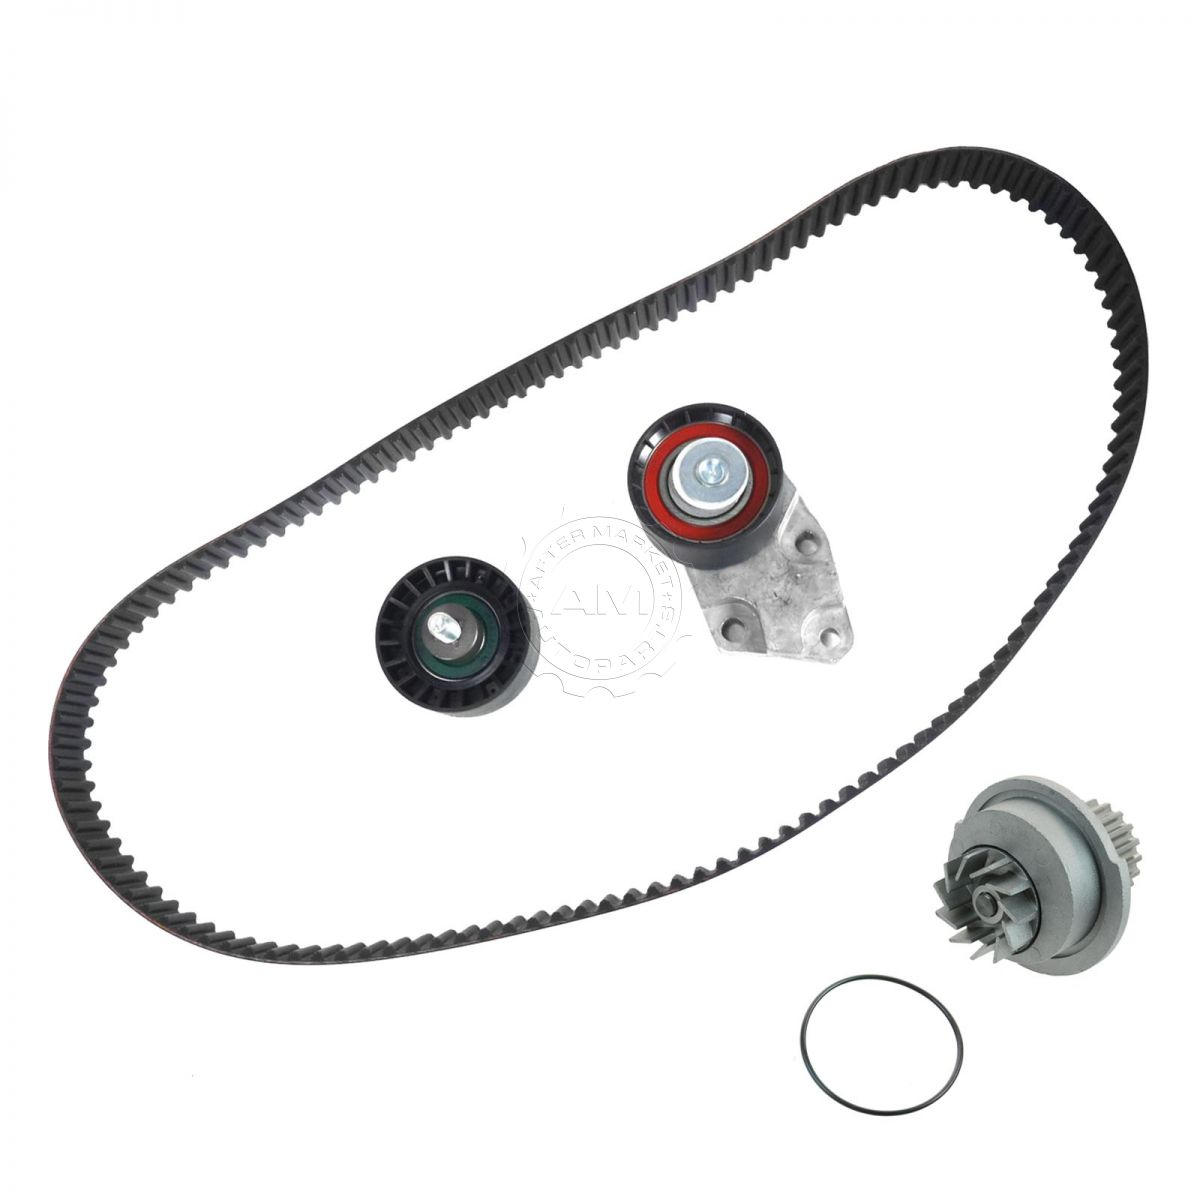 Timing Belt Amp Water Pump Set Kit For Chevy Aveo Aveo5